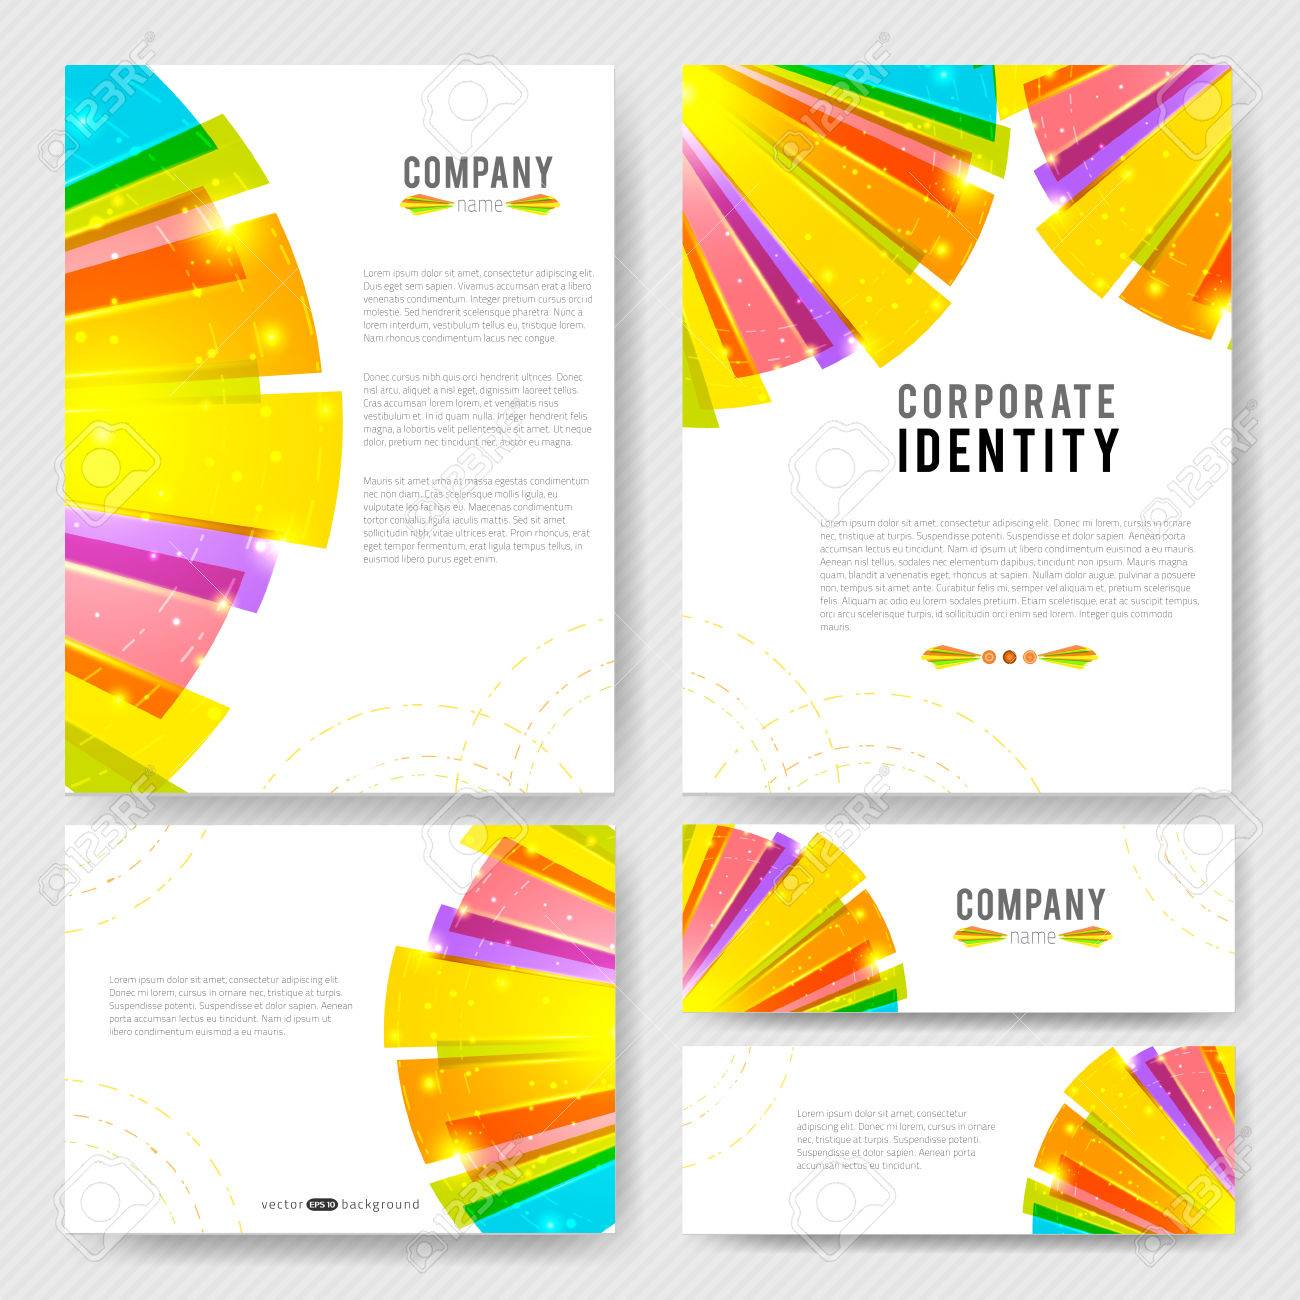 Corporate Identity vector templates set with bright colorful